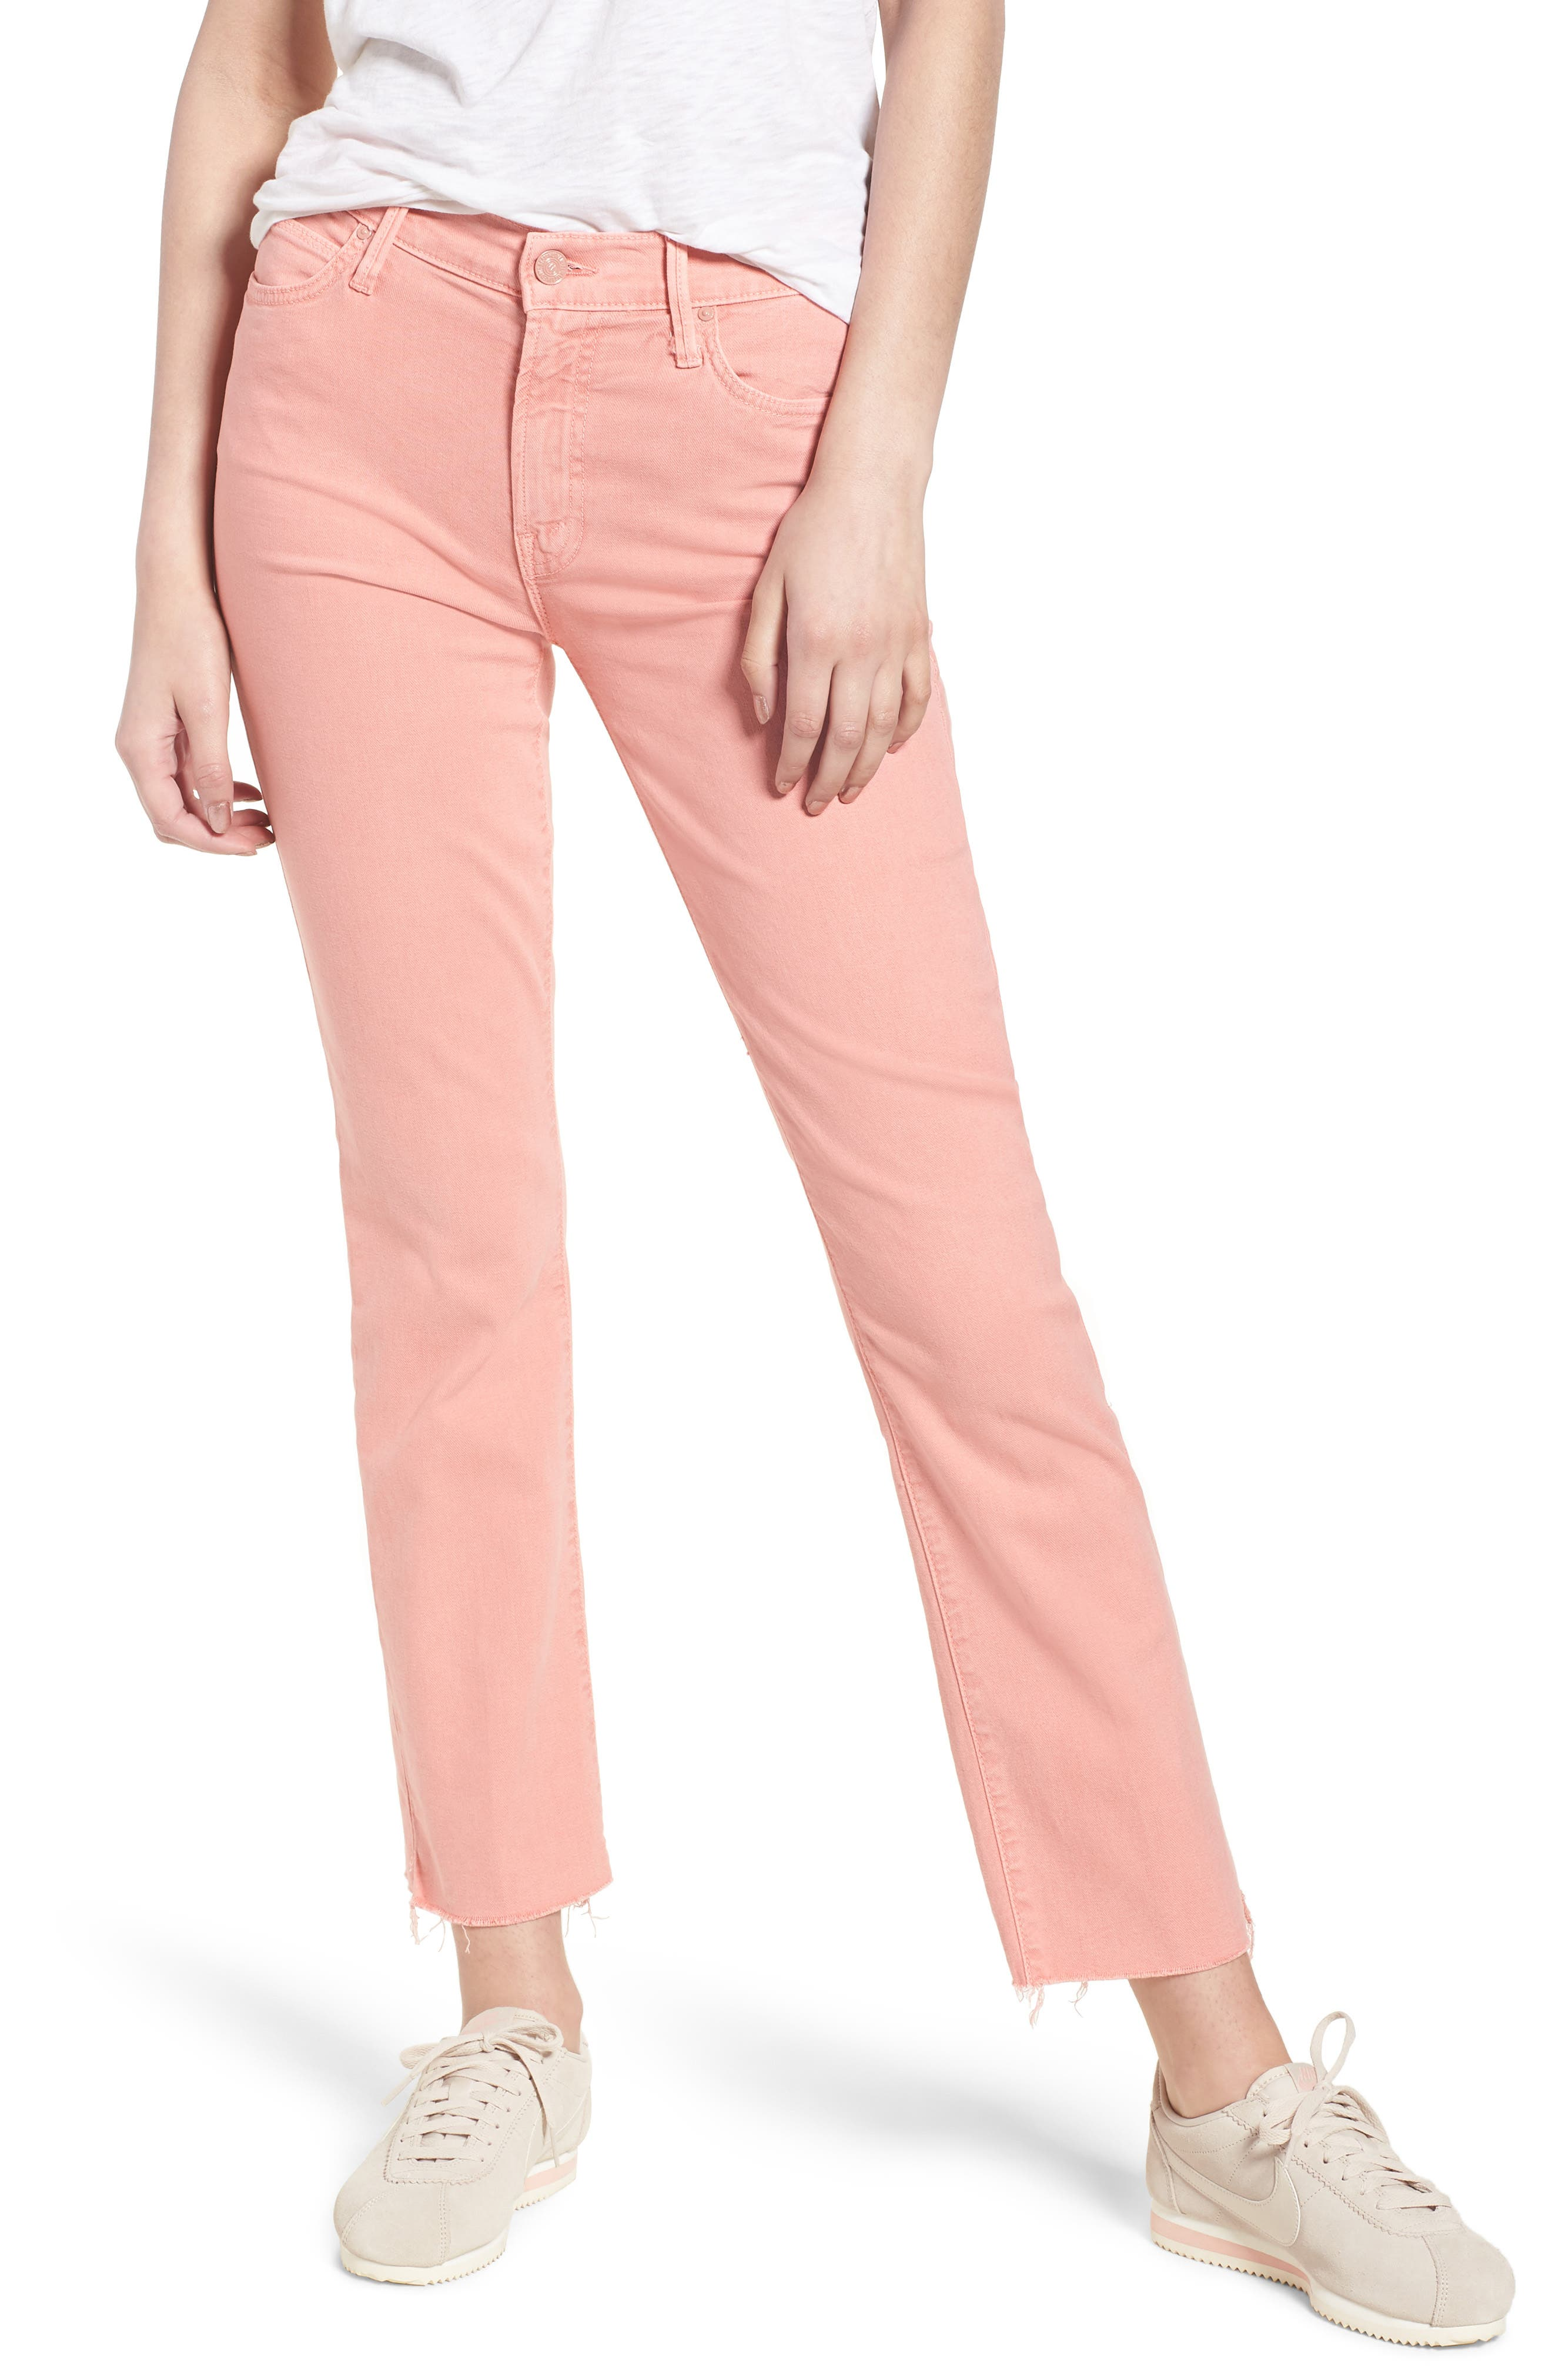 The Rascal Ankle Snippet Jeans,                         Main,                         color, Dusty Pink